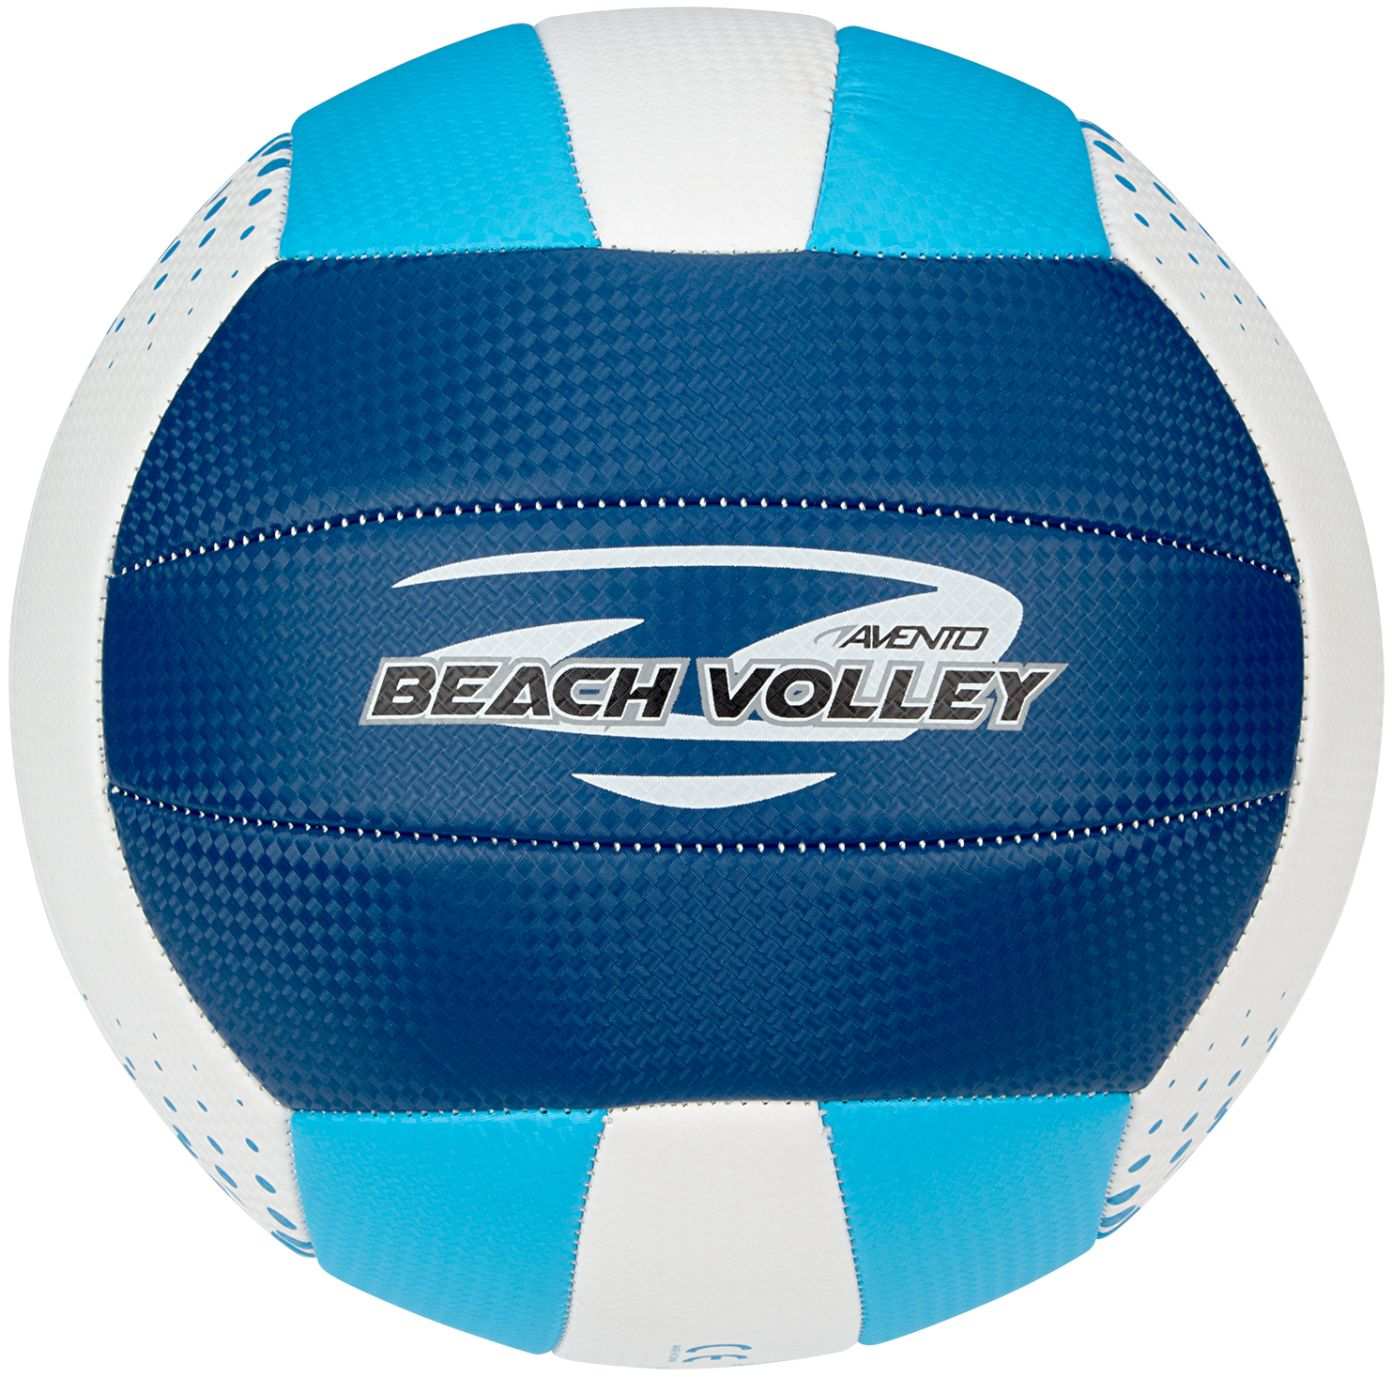 Strand Volleybal • Soft Touch • Jump Start •